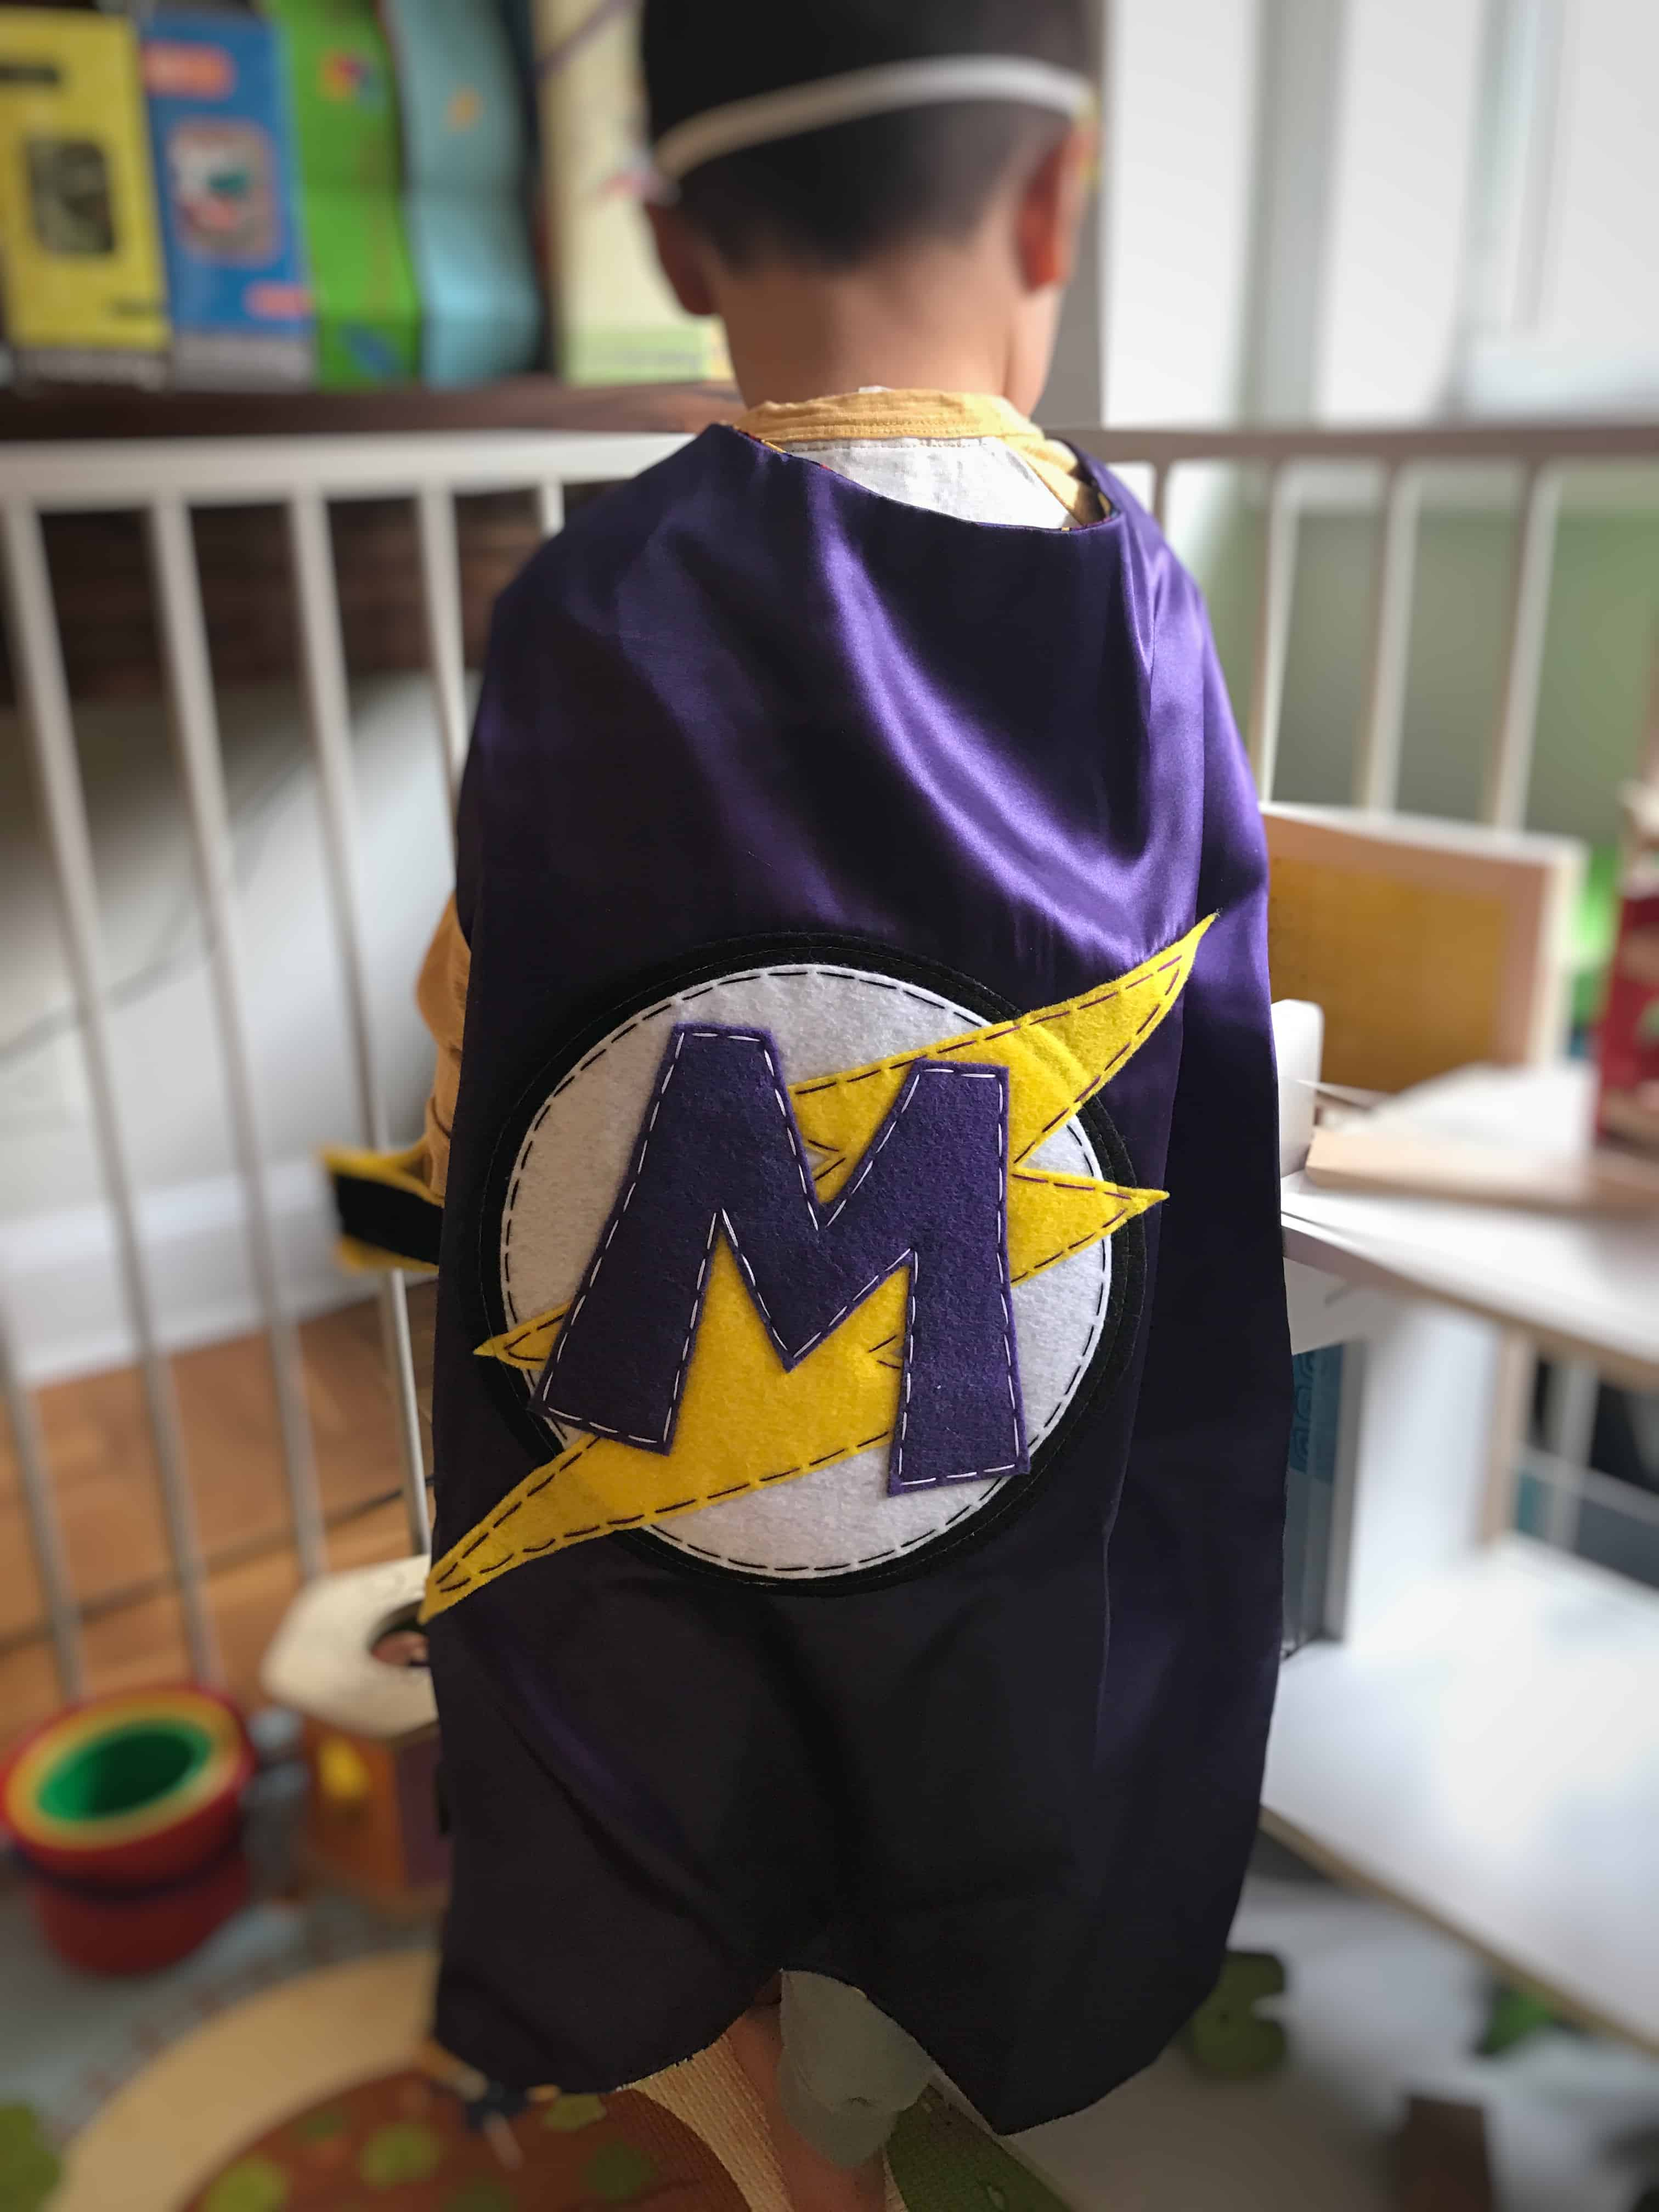 Holiday Gift Ideas - Superhero Costume